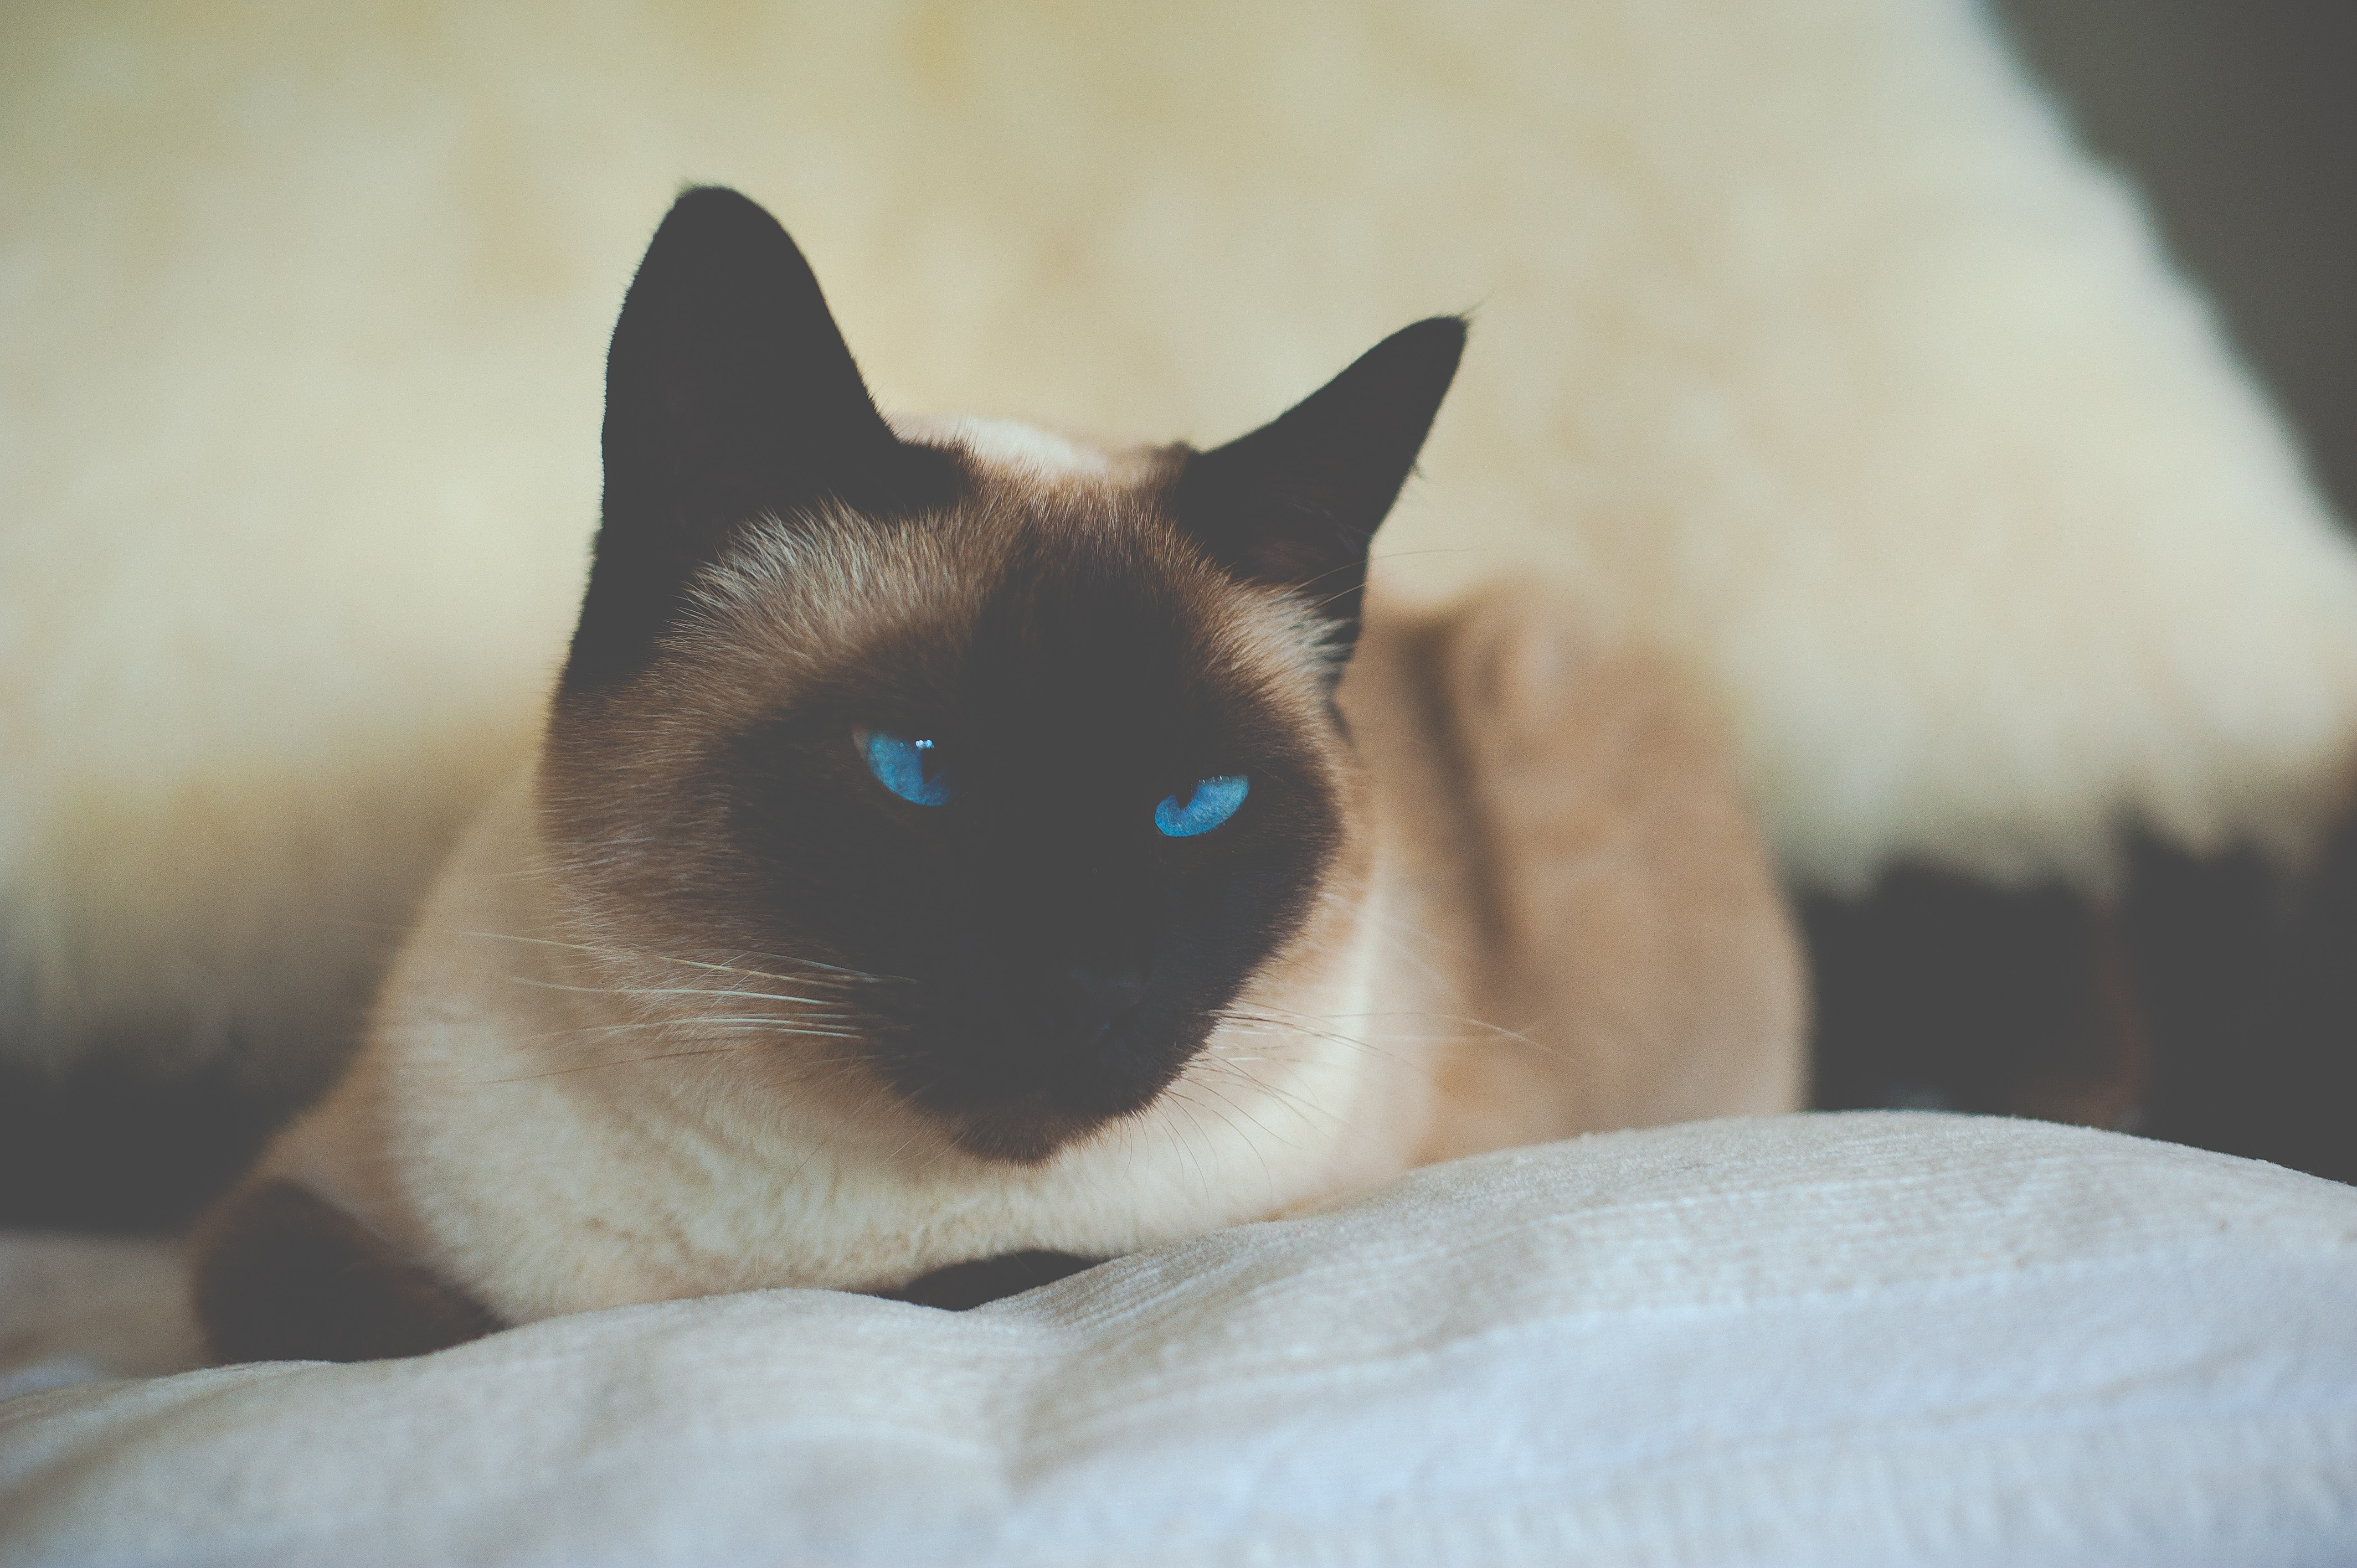 93037 download wallpaper Animals, Cat, Siamese, Blue Eyed, Blue-Eyed screensavers and pictures for free